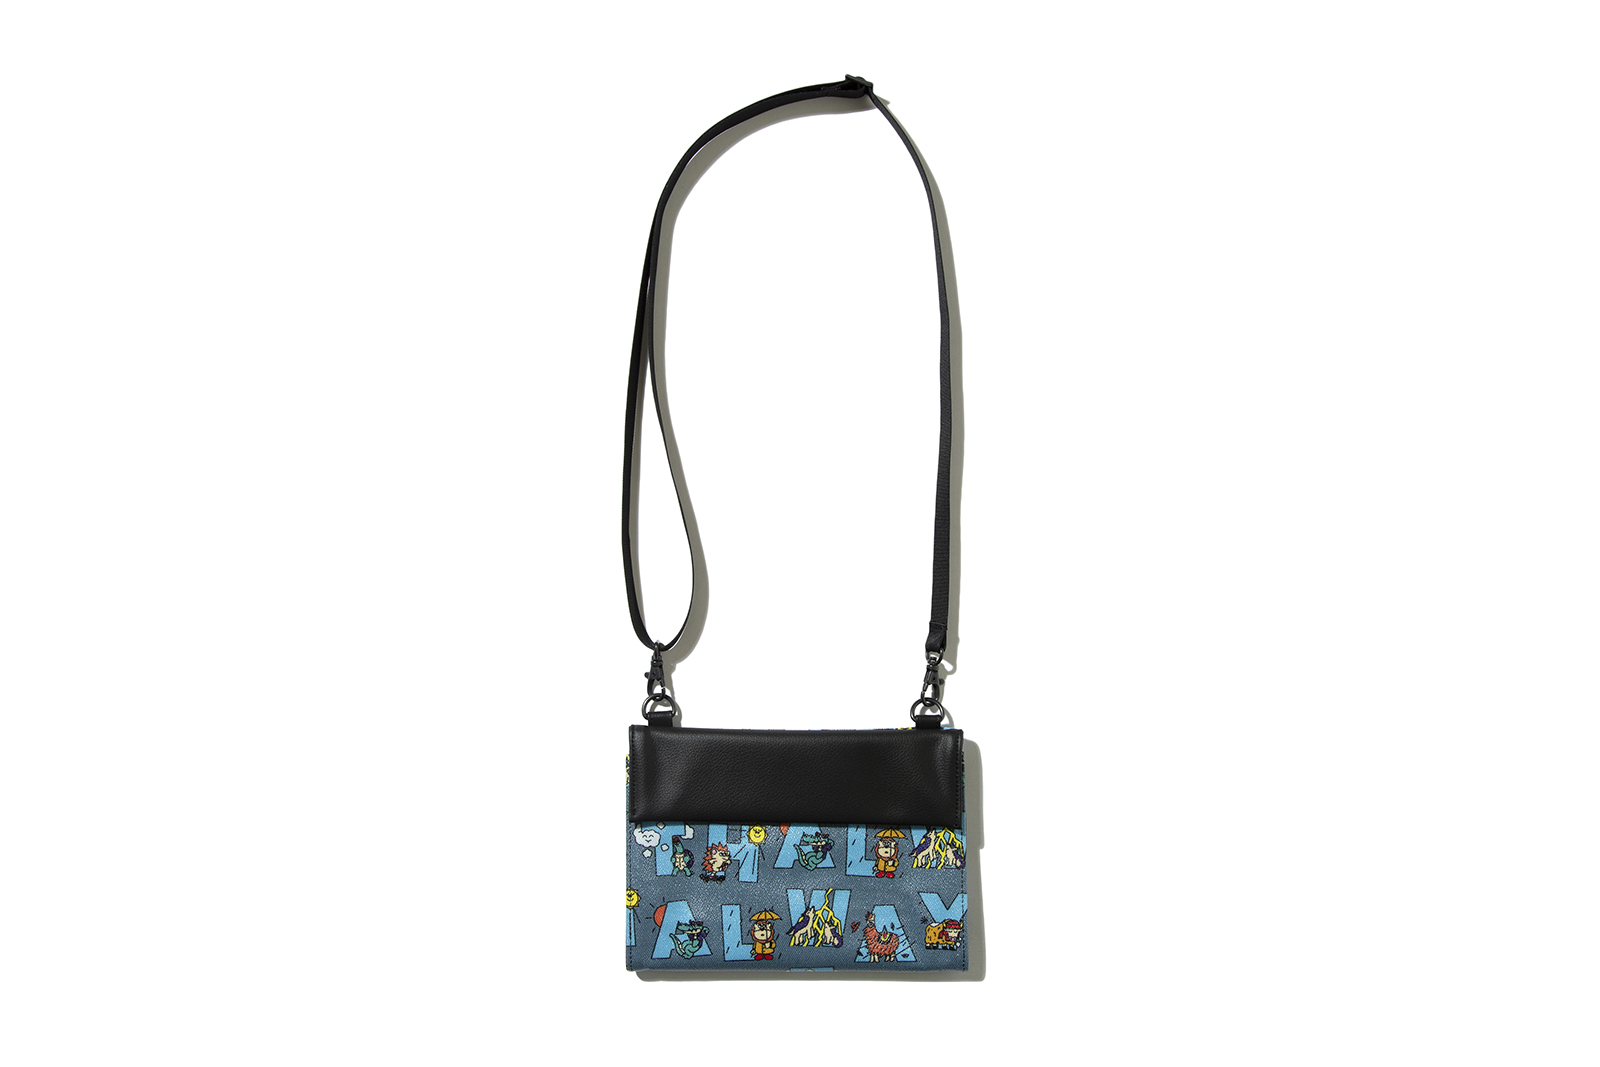 alwayth-x-lurk-x-fabrick-multifunctional-bag_p2